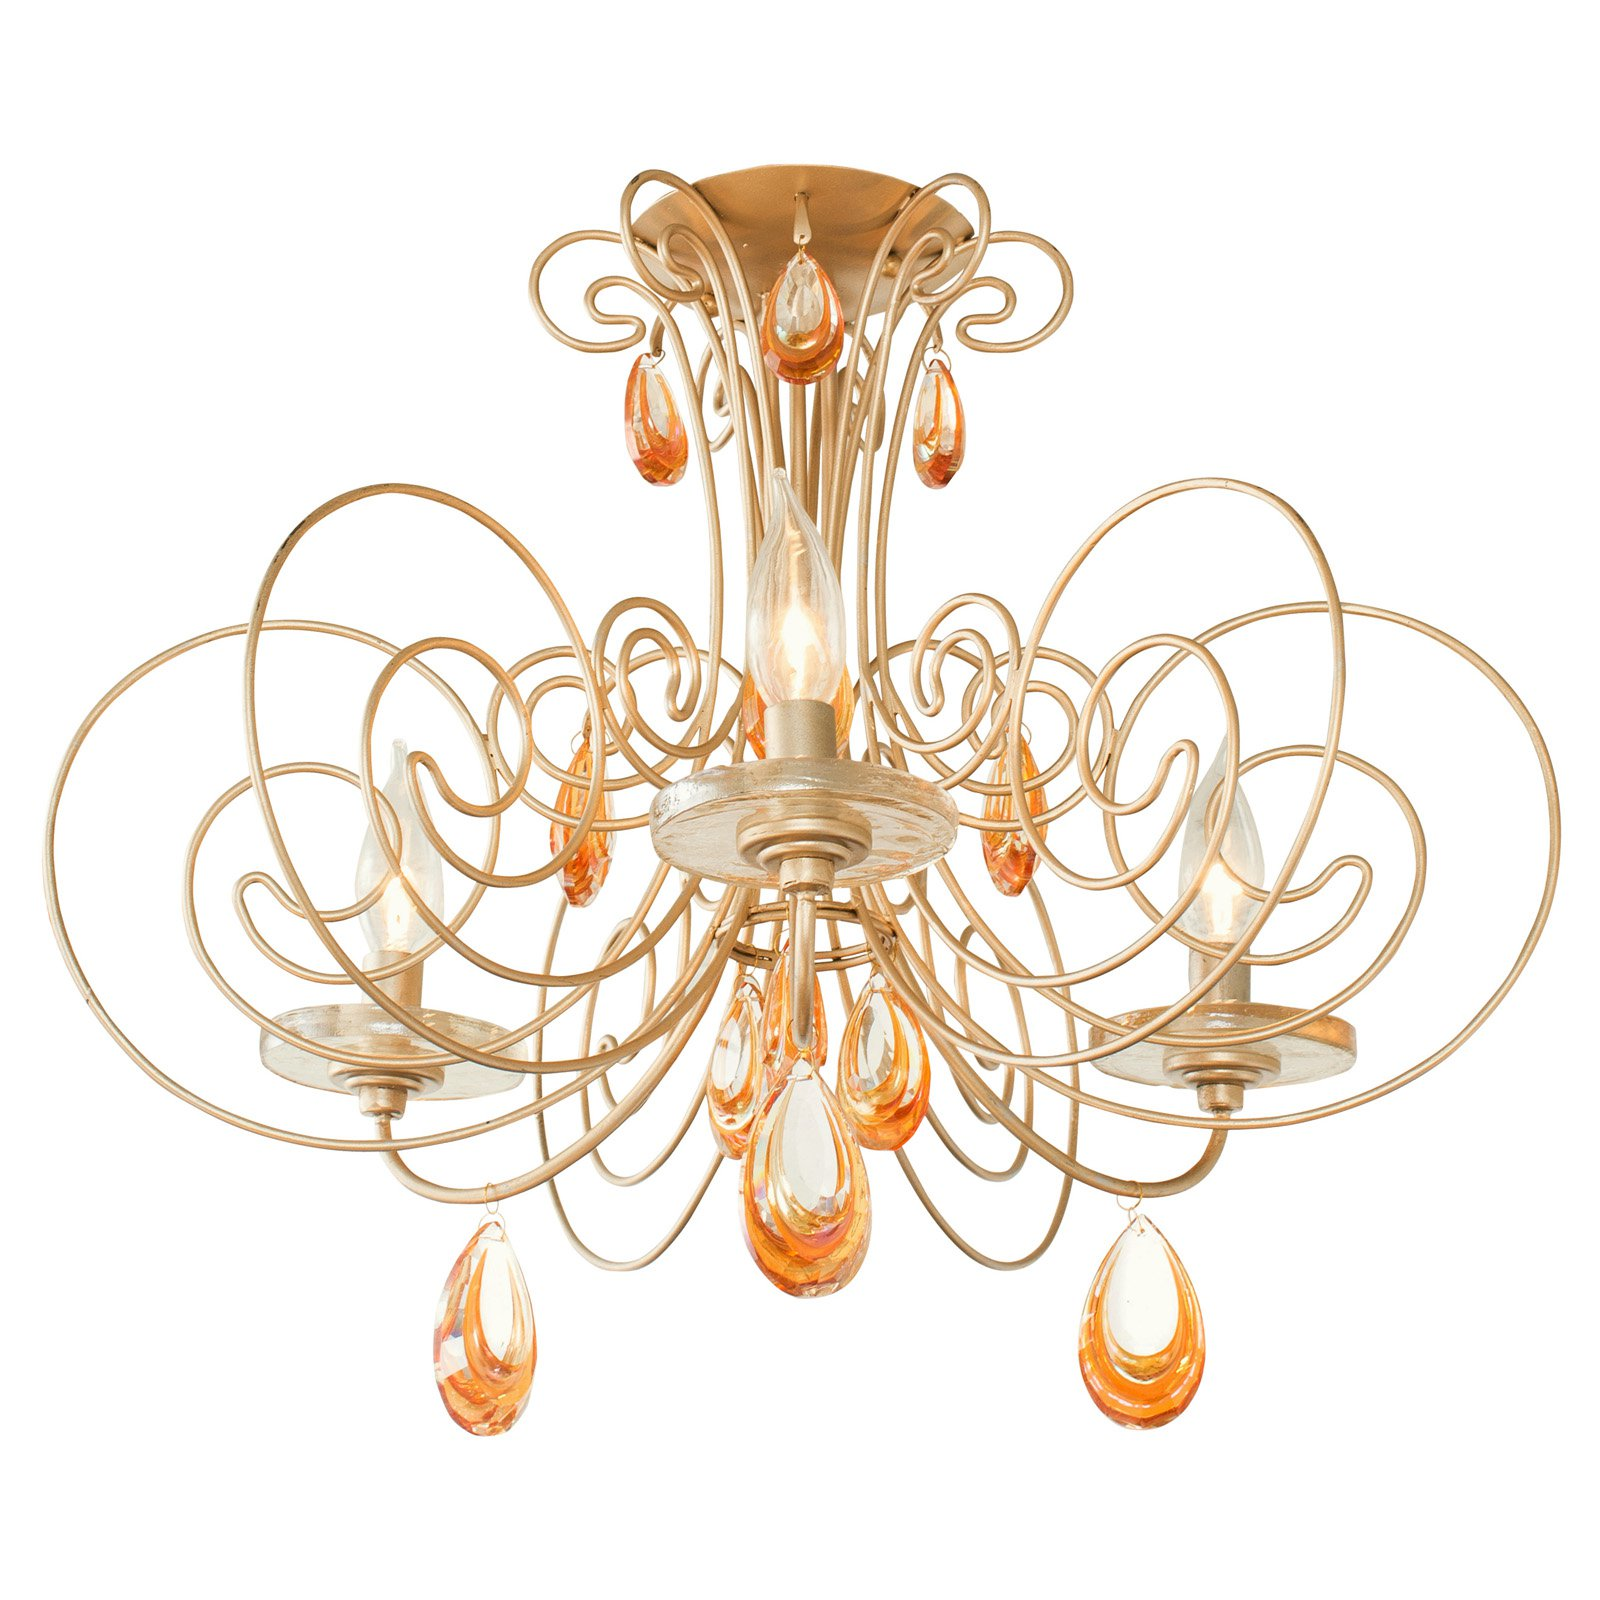 Varaluz Elysse 238S03GD 3 Light Semi Flush Mount